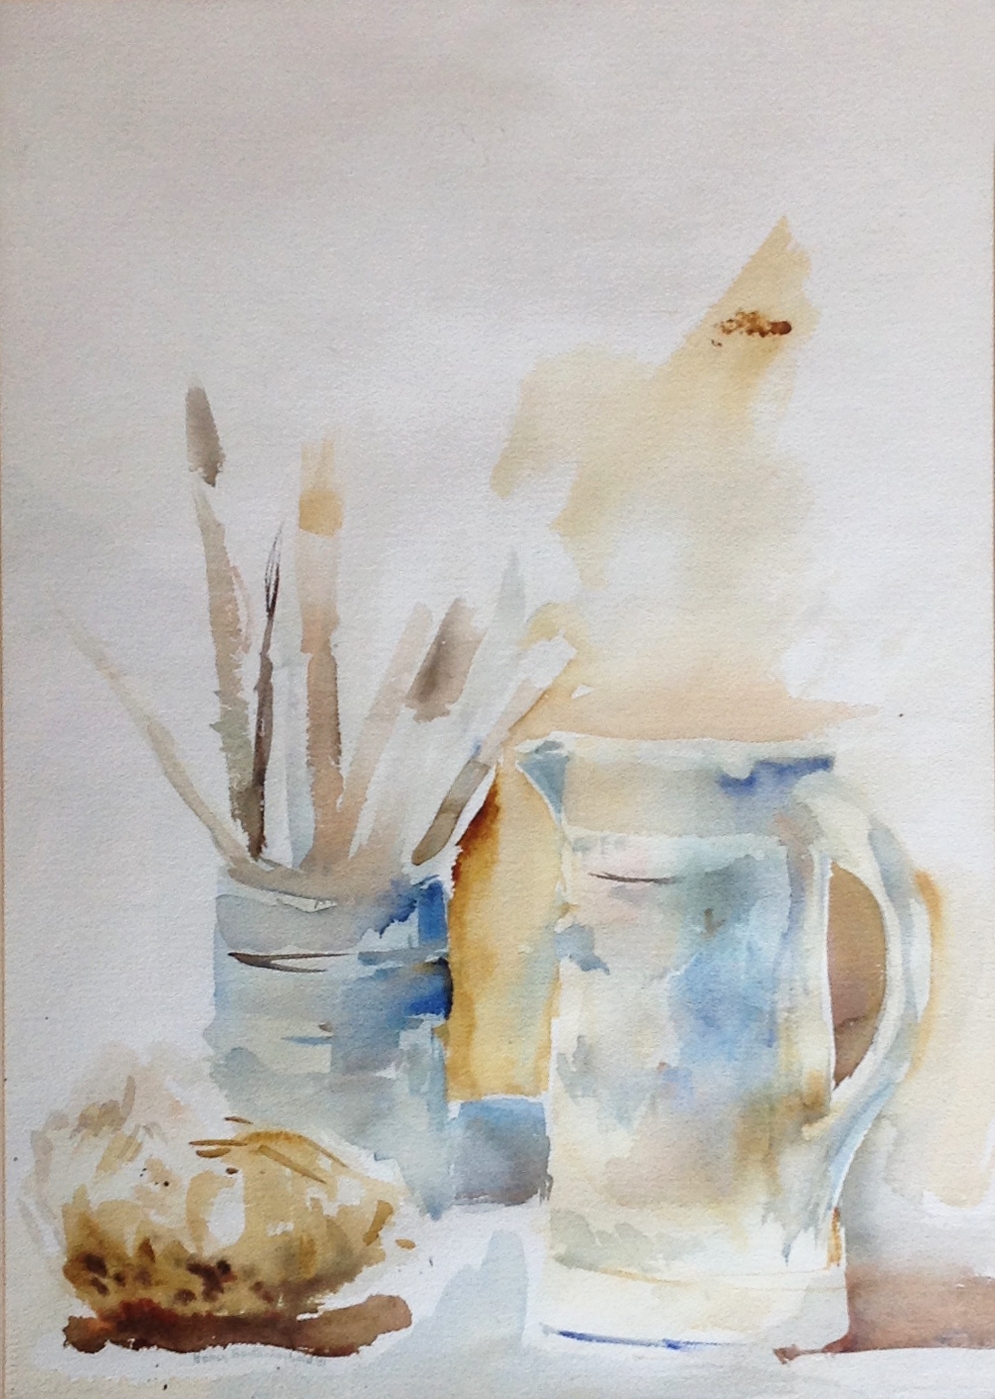 Old Pitcher - 14 x 20 - Collection of Thomas and Mary Cook